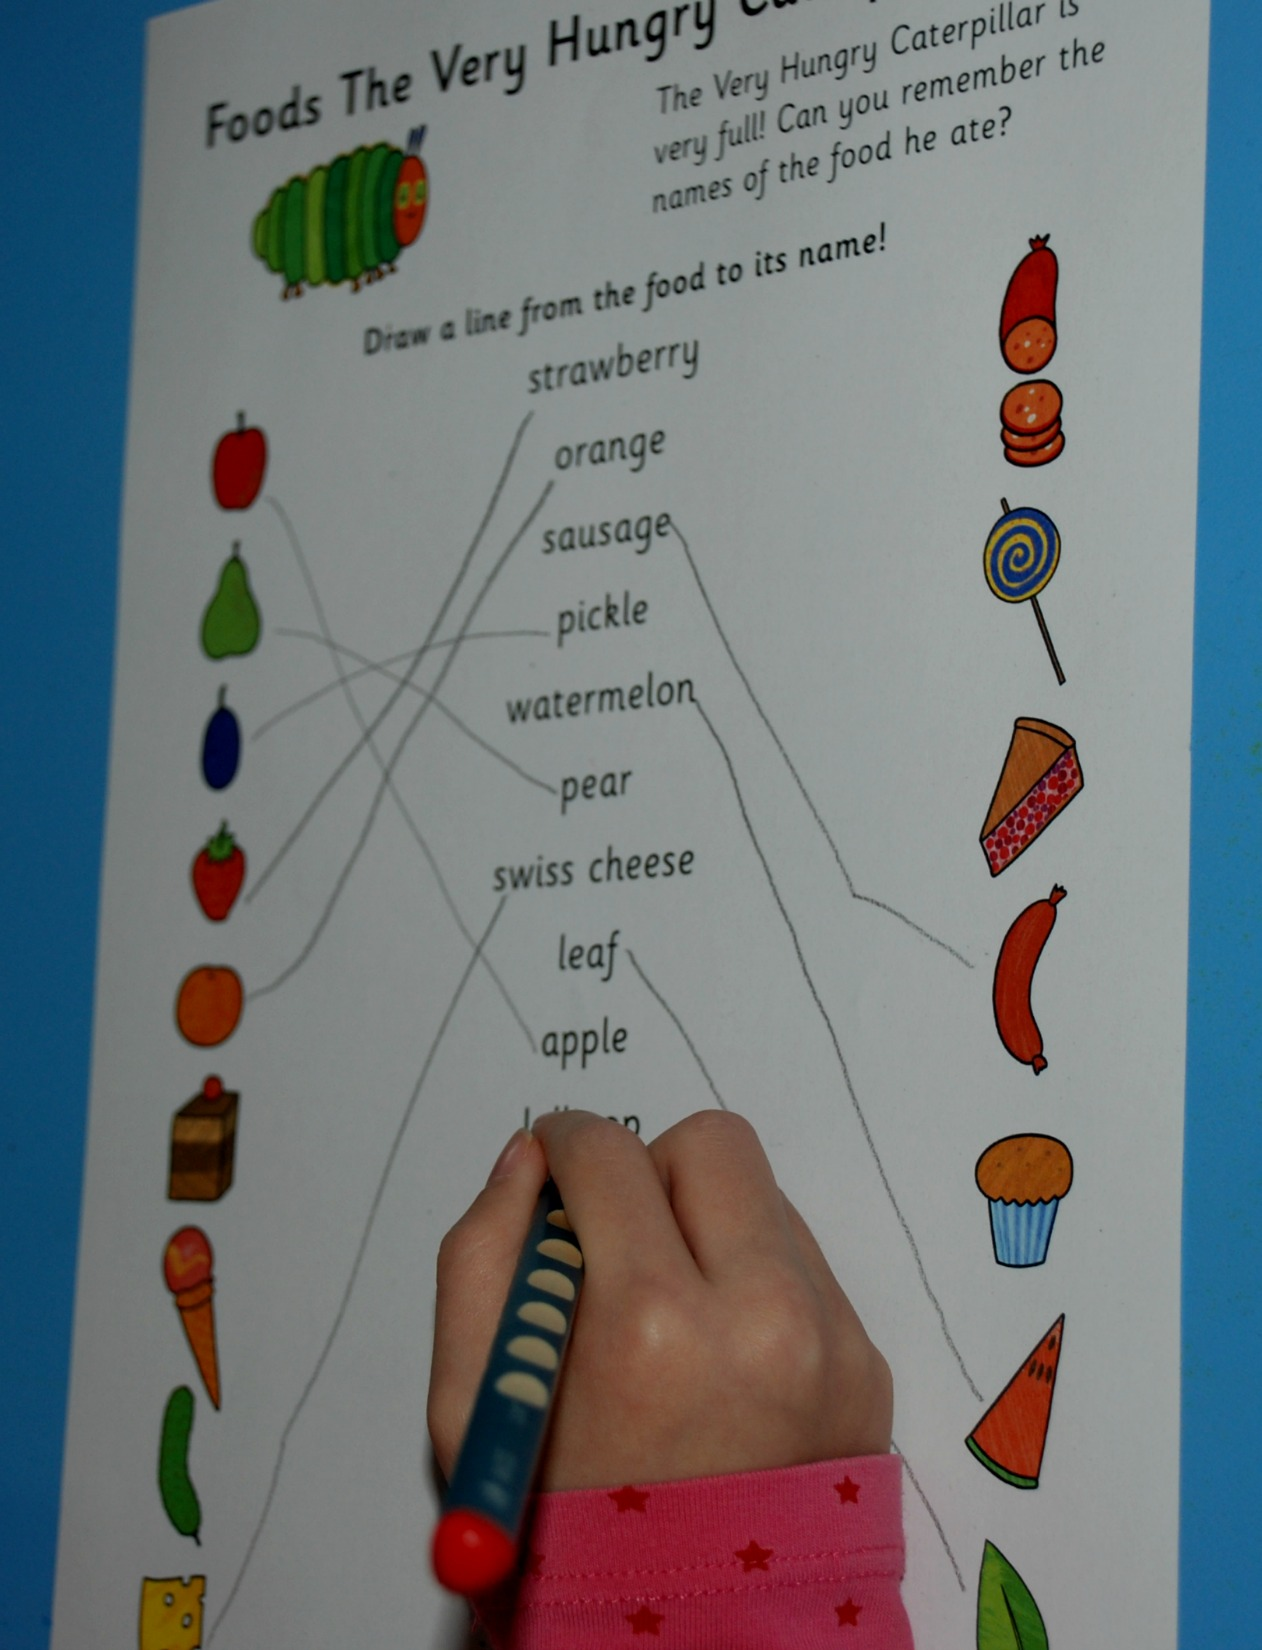 Magnificent Very Hungry Caterpillar Math Worksheets Image - Math ...